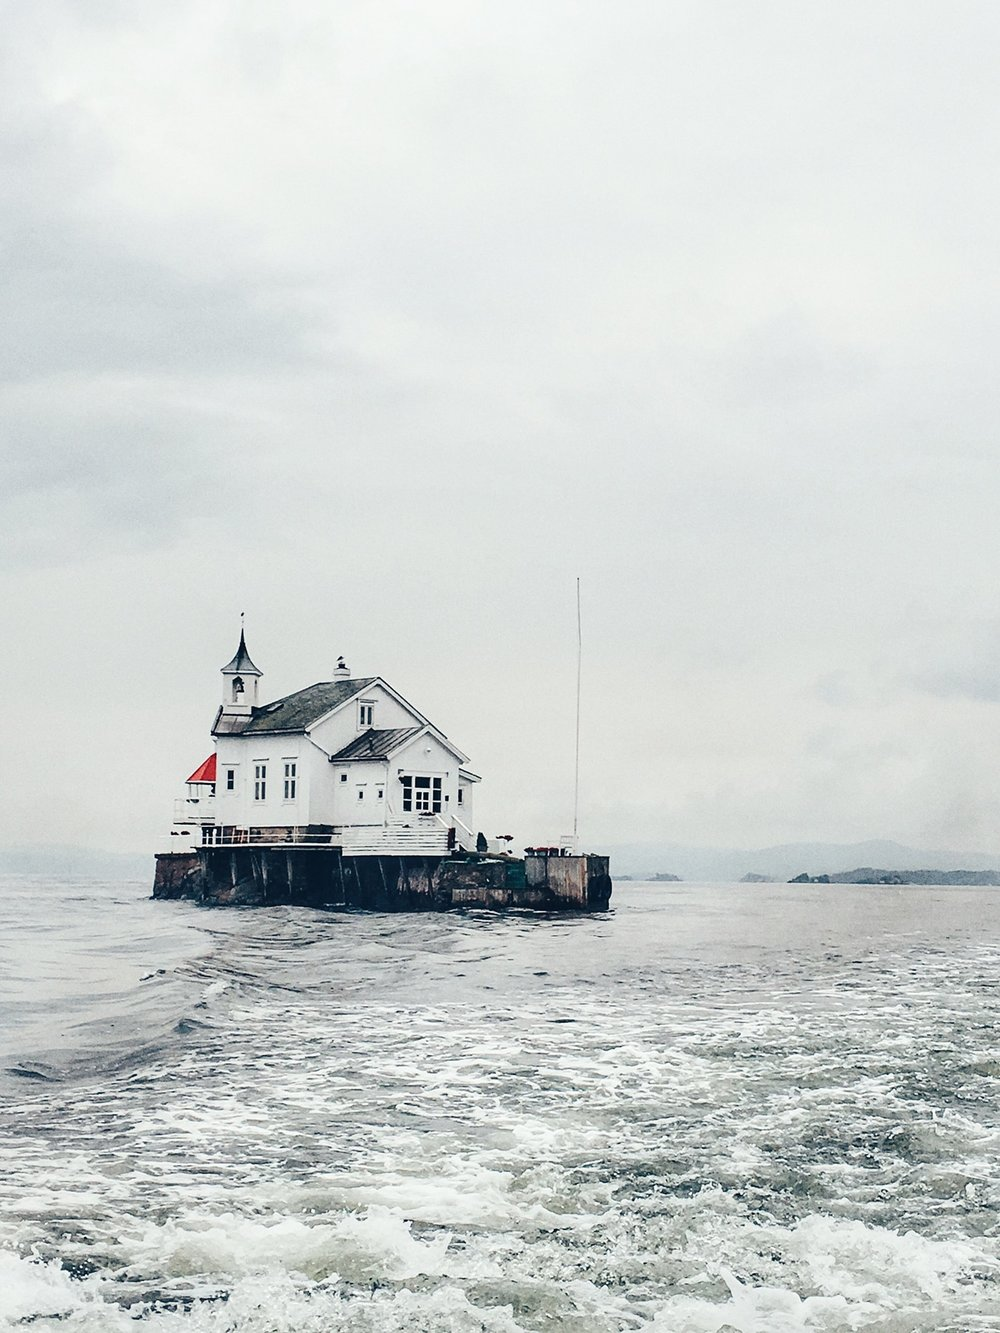 Old Lighthouse in the Oslo Fjords